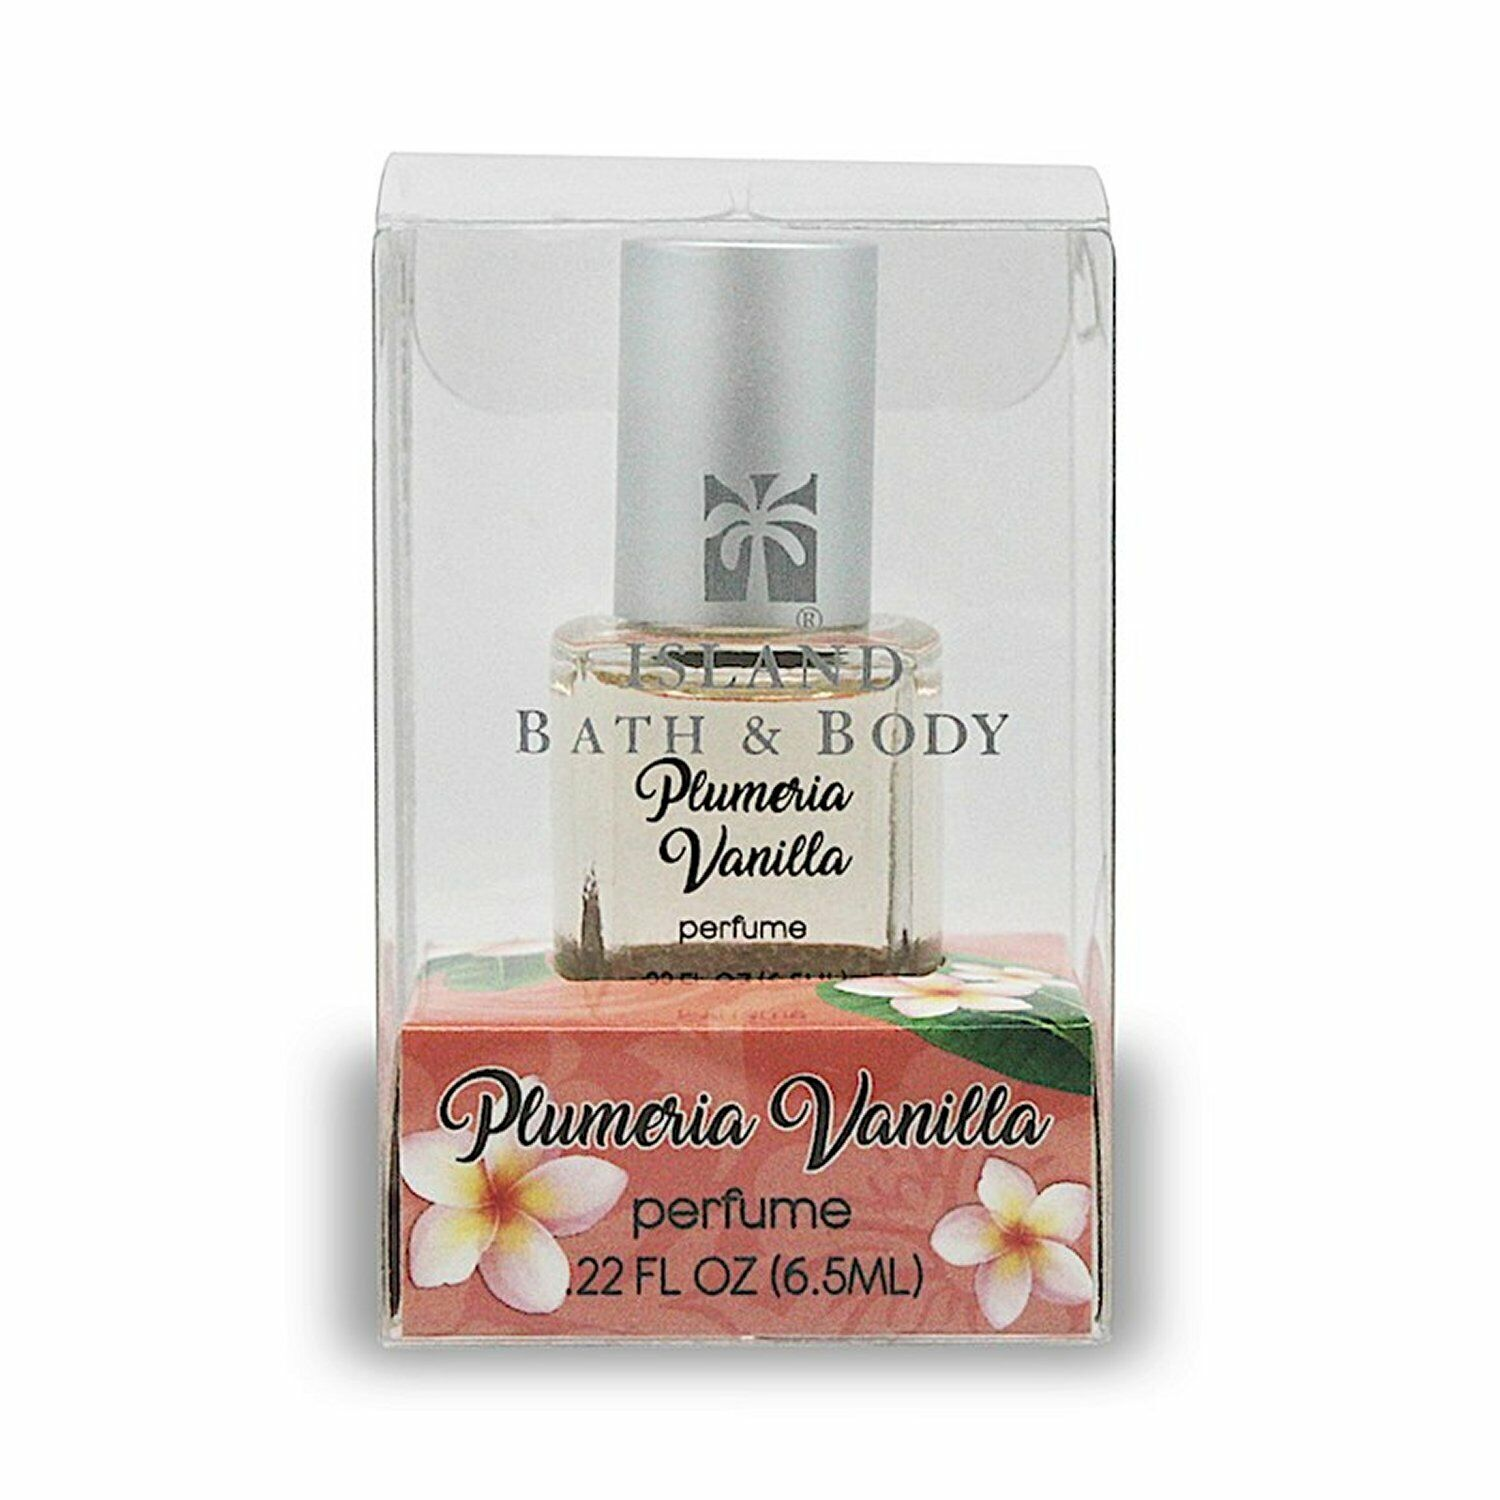 Hawaiian Plumeria Vanilla Flower Perfume from Island Bath and Body - 0.22 FL OZ